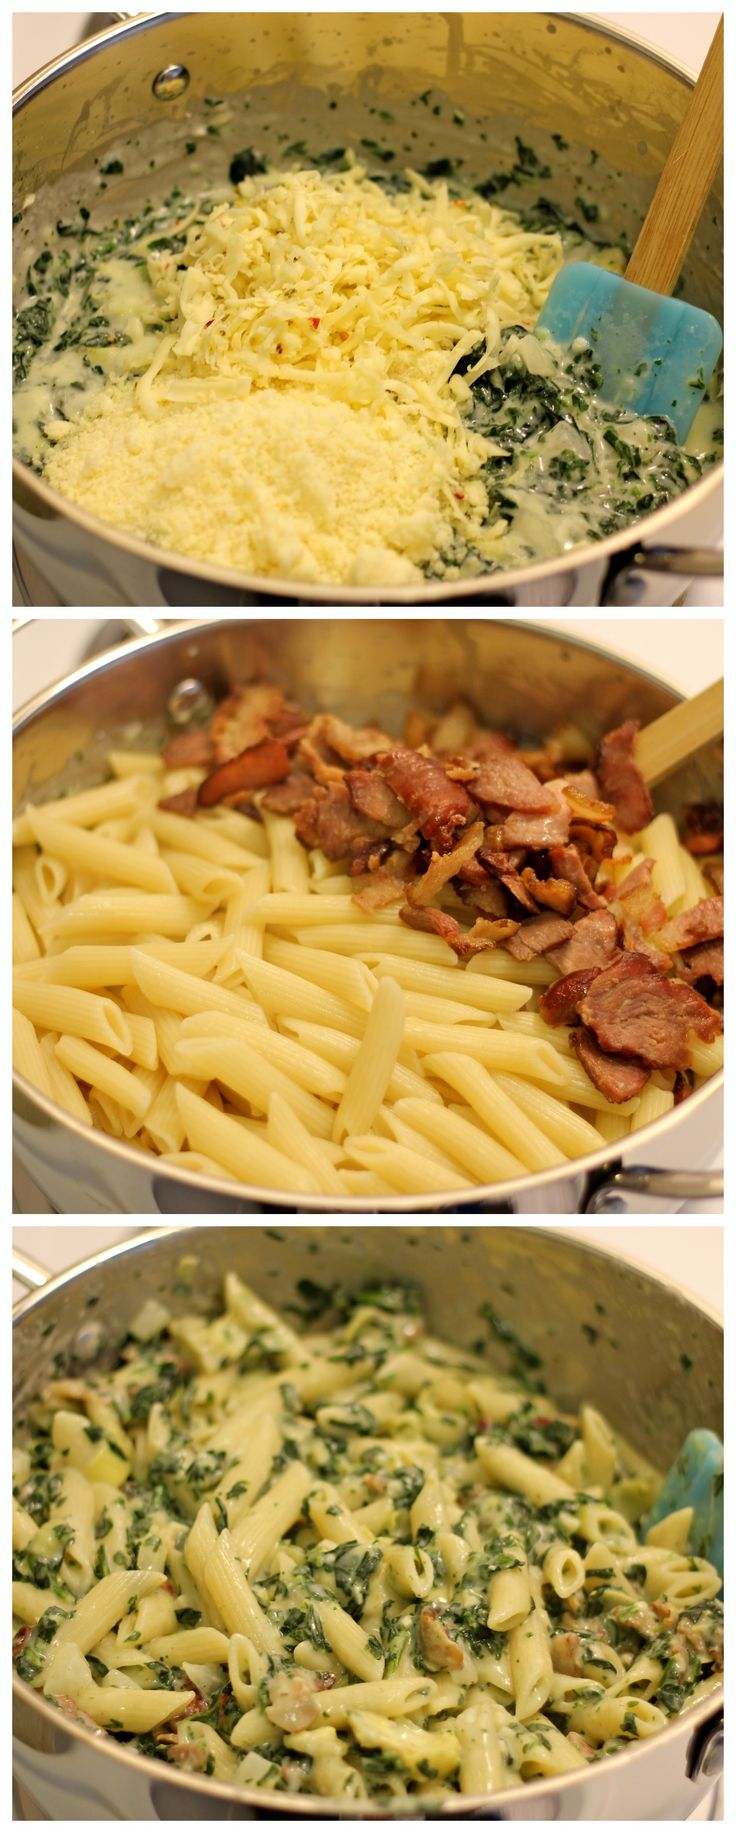 coats for women canada Spinach and Artichoke Dip Pasta  Recipe